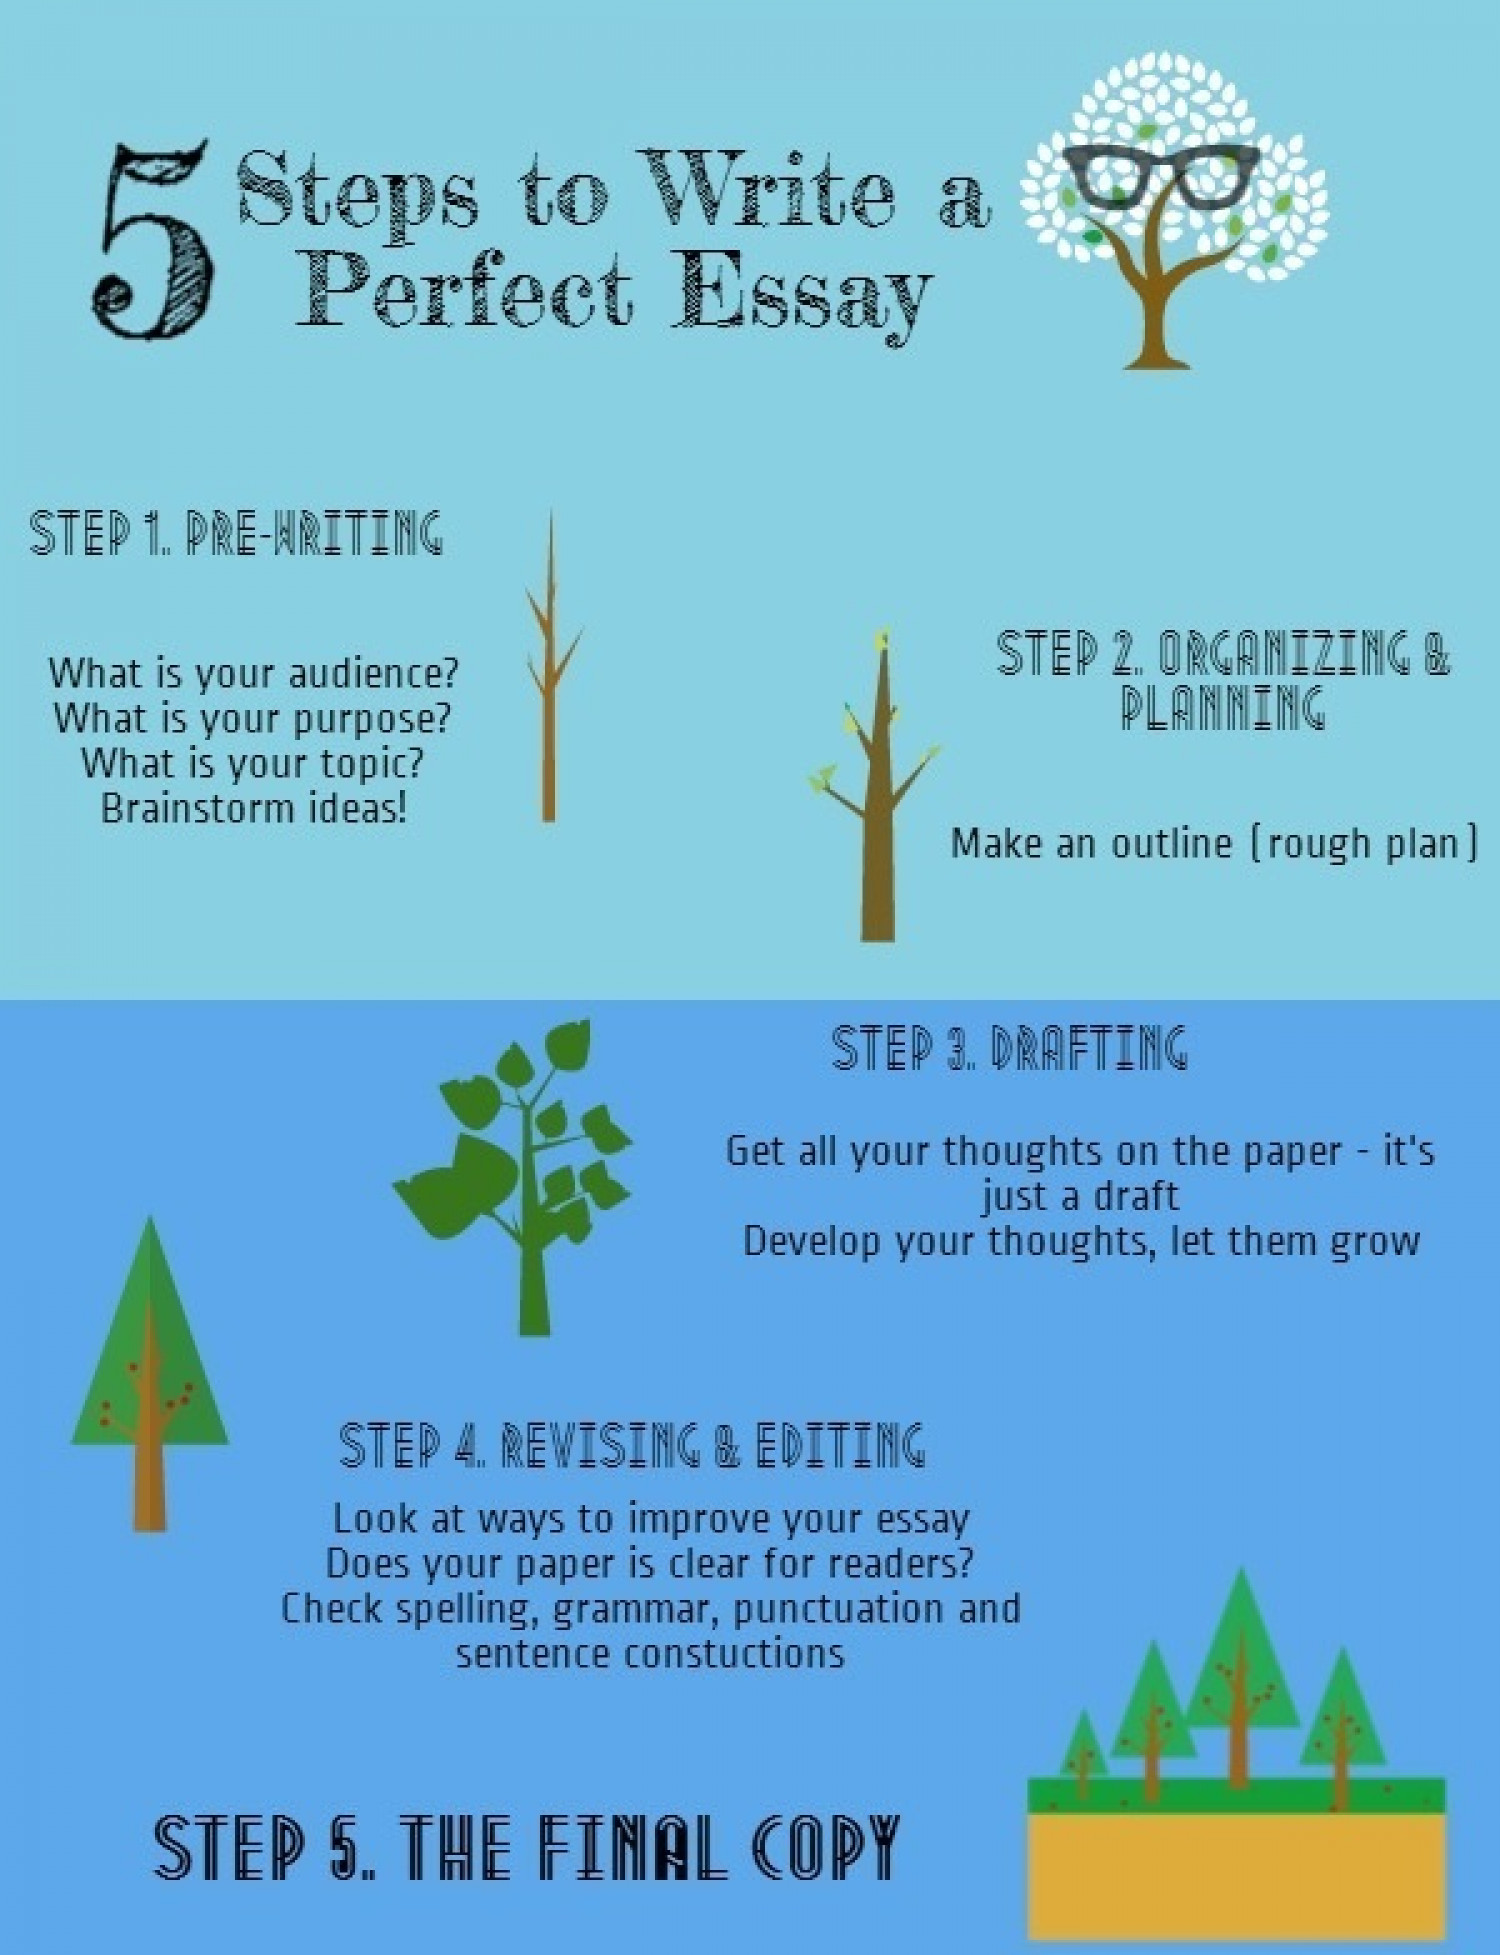 the steps for writing an essay 7 steps to writing a captivating, one-of-a-kind college application essay huffpost multicultural/hpmg news.